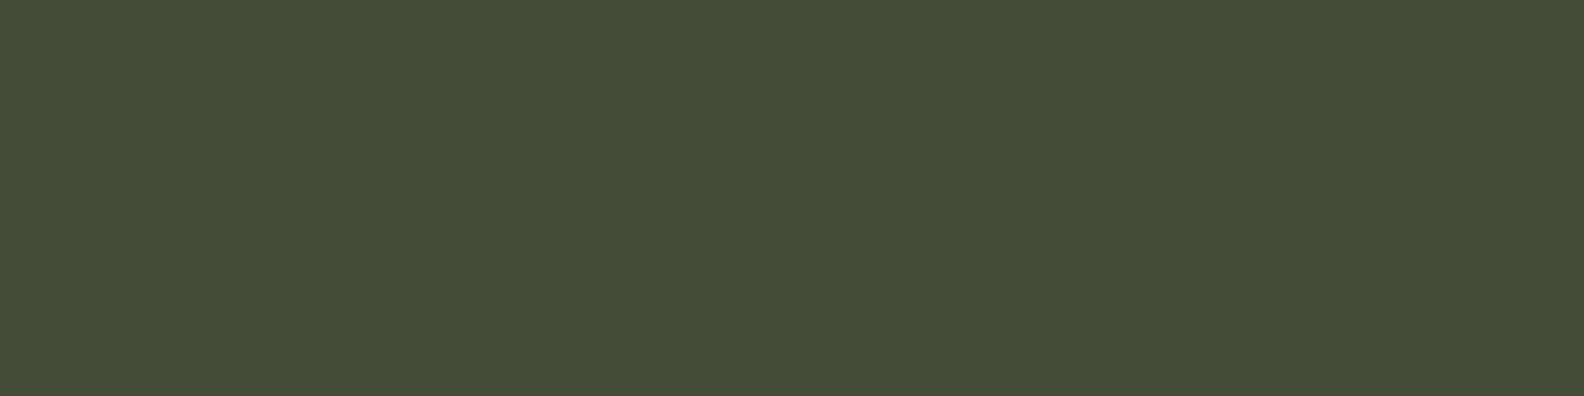 1584x396 Rifle Green Solid Color Background